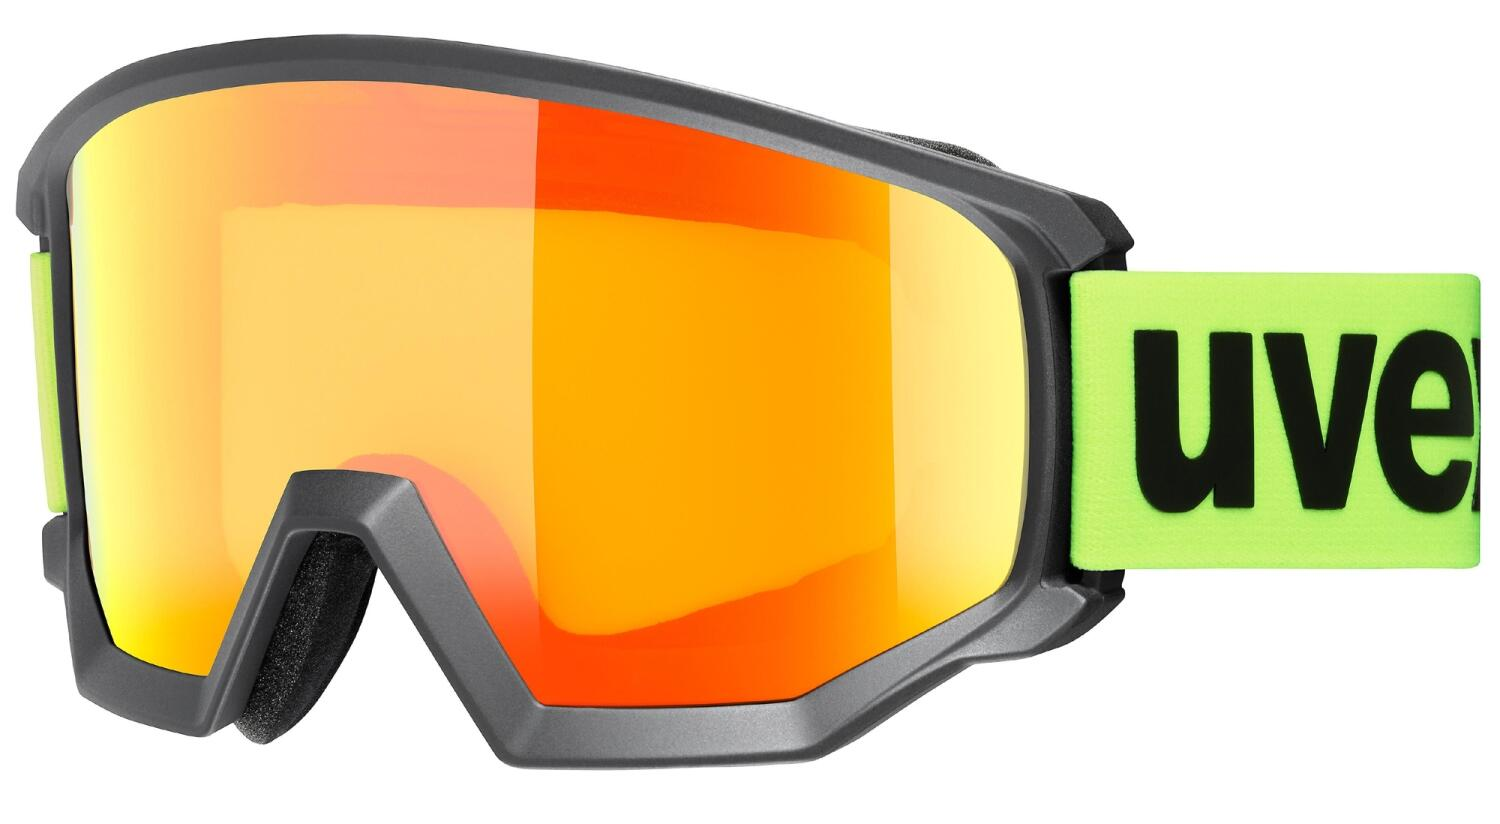 uvex-athletic-cv-skibrille-brillentr-auml-ger-farbe-3030-black-mat-mirror-orange-colorvision-yell